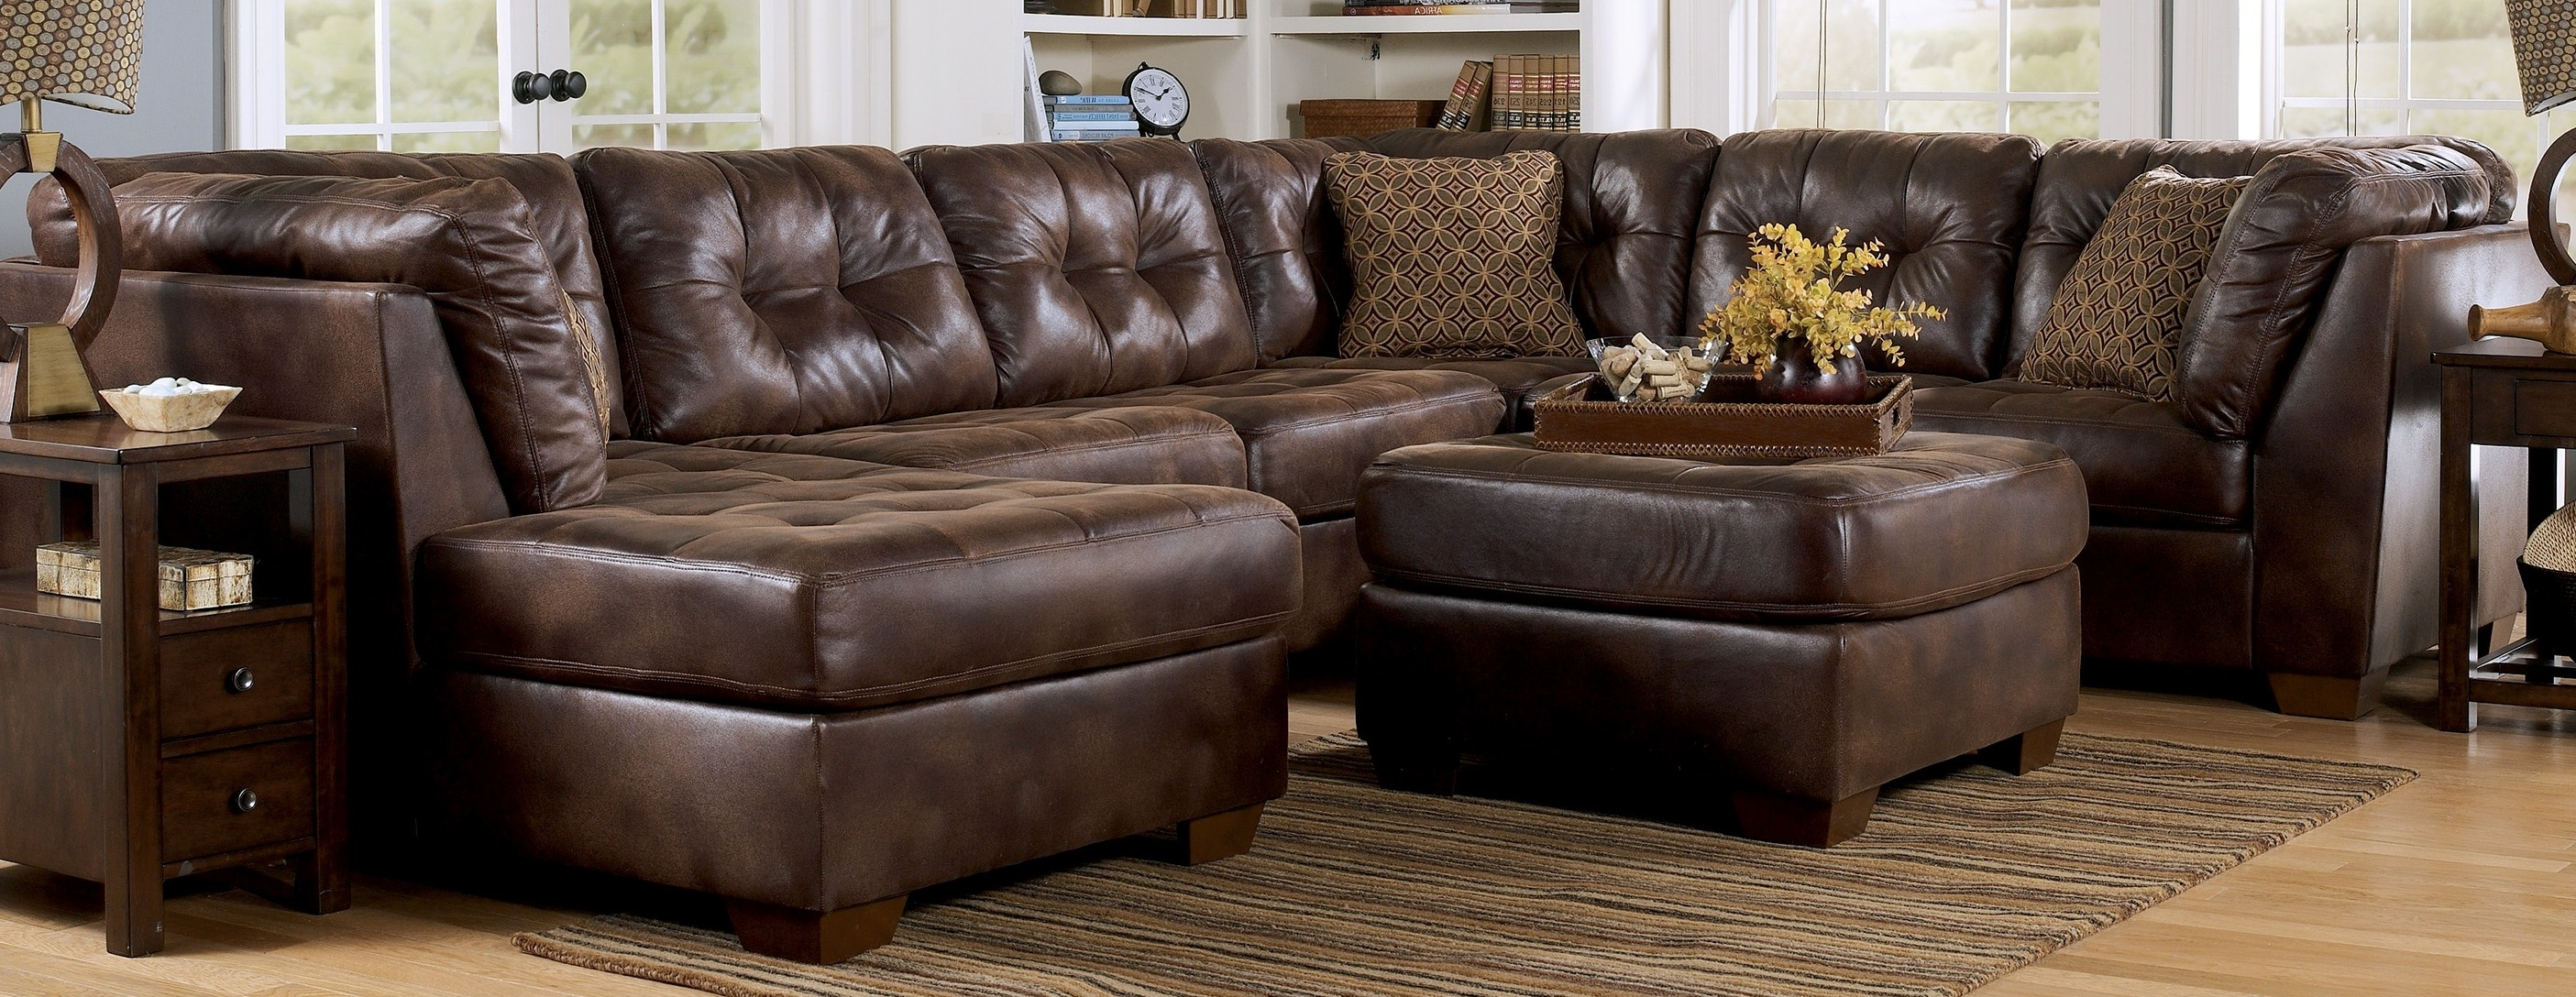 Brown Leather Sectional Sofa With Chaise Within Famous High End Leather Sectional Sofas (View 7 of 20)